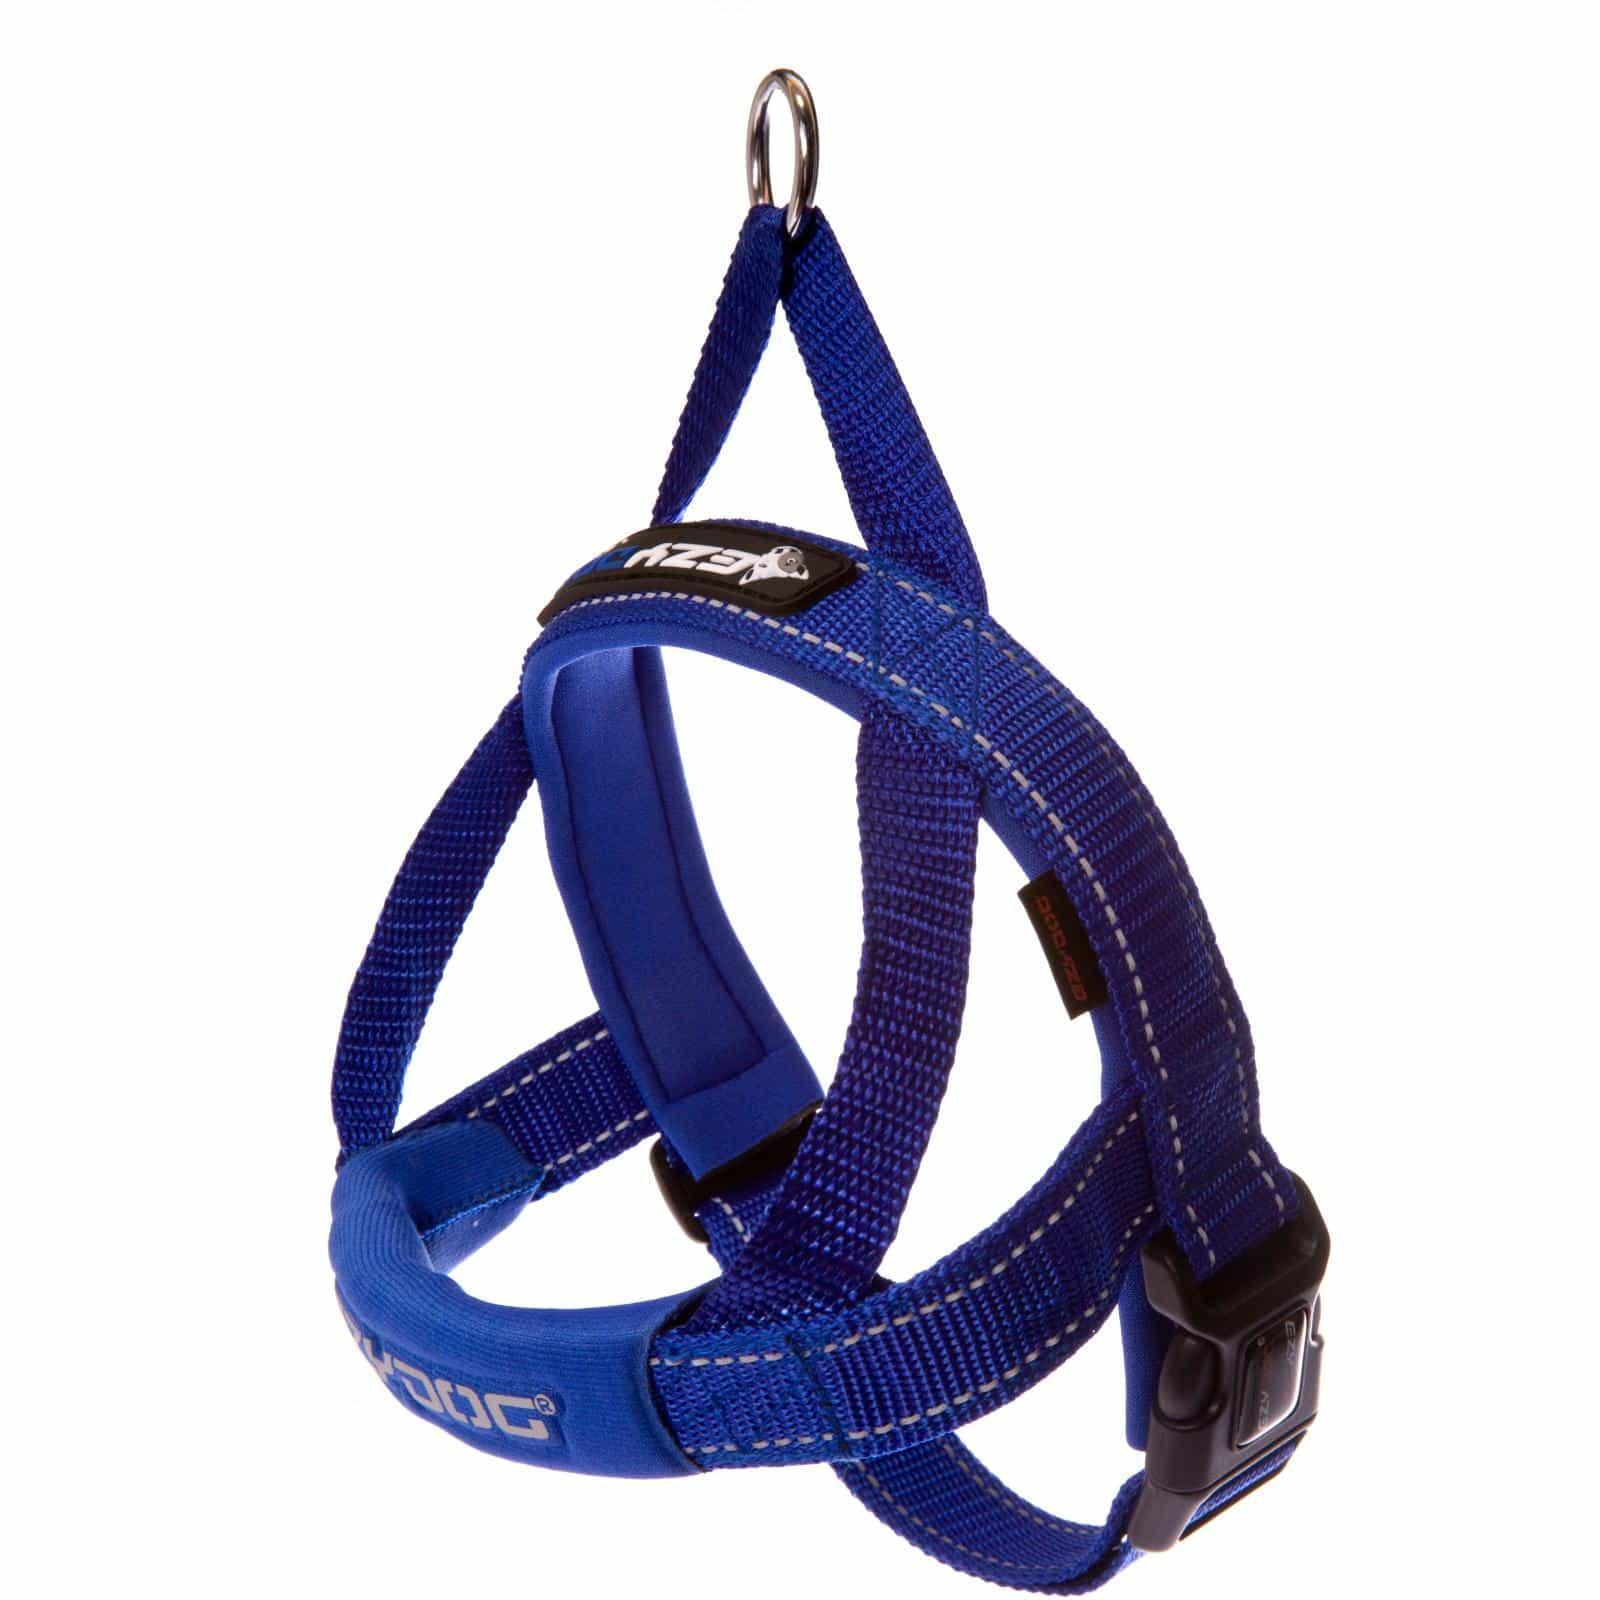 Ezydog Ezydog Quick Fit Harness